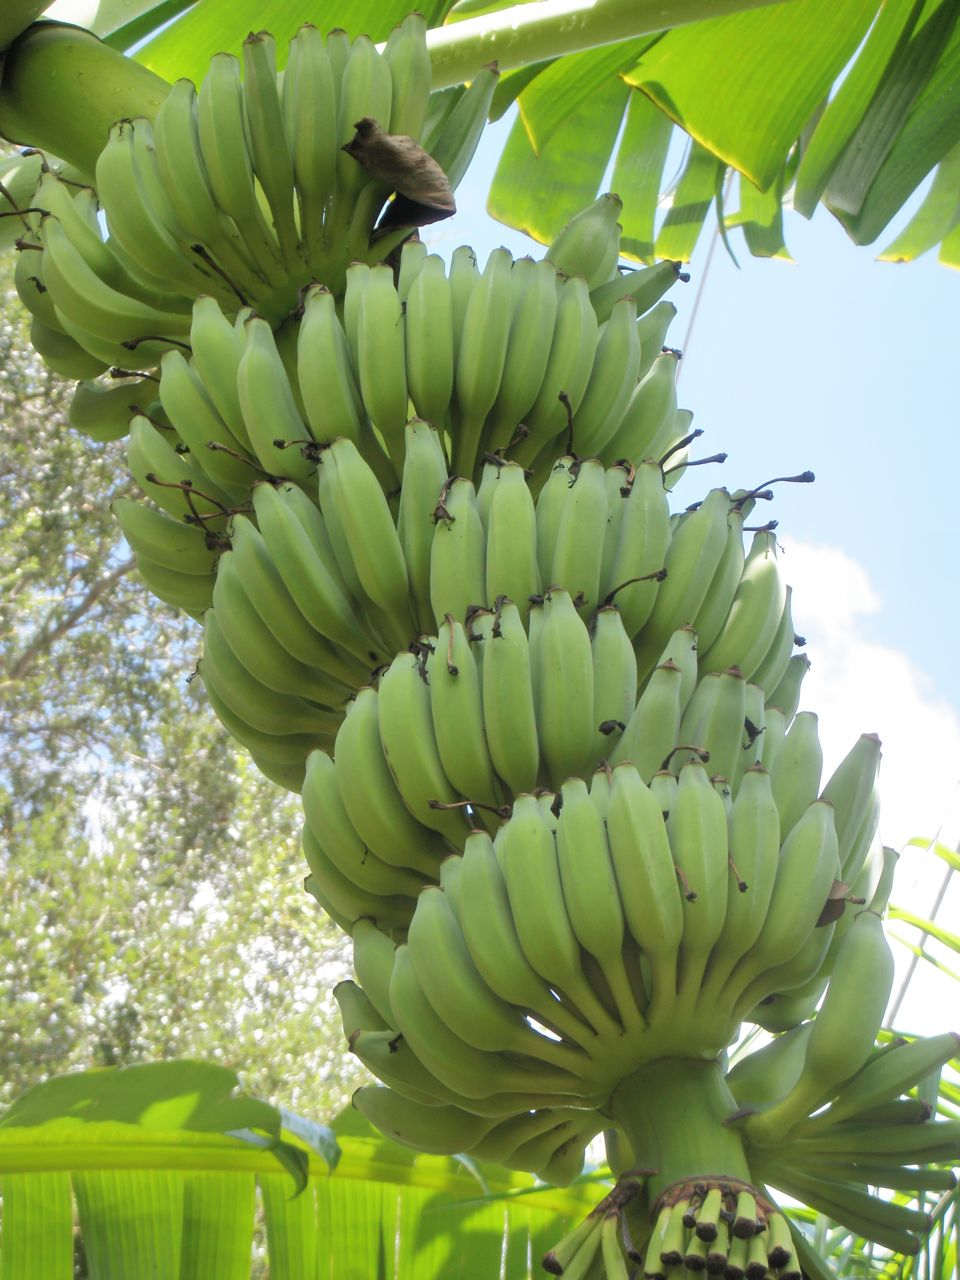 Great Deals On Bananas And Papayas Planted Or Not Planted